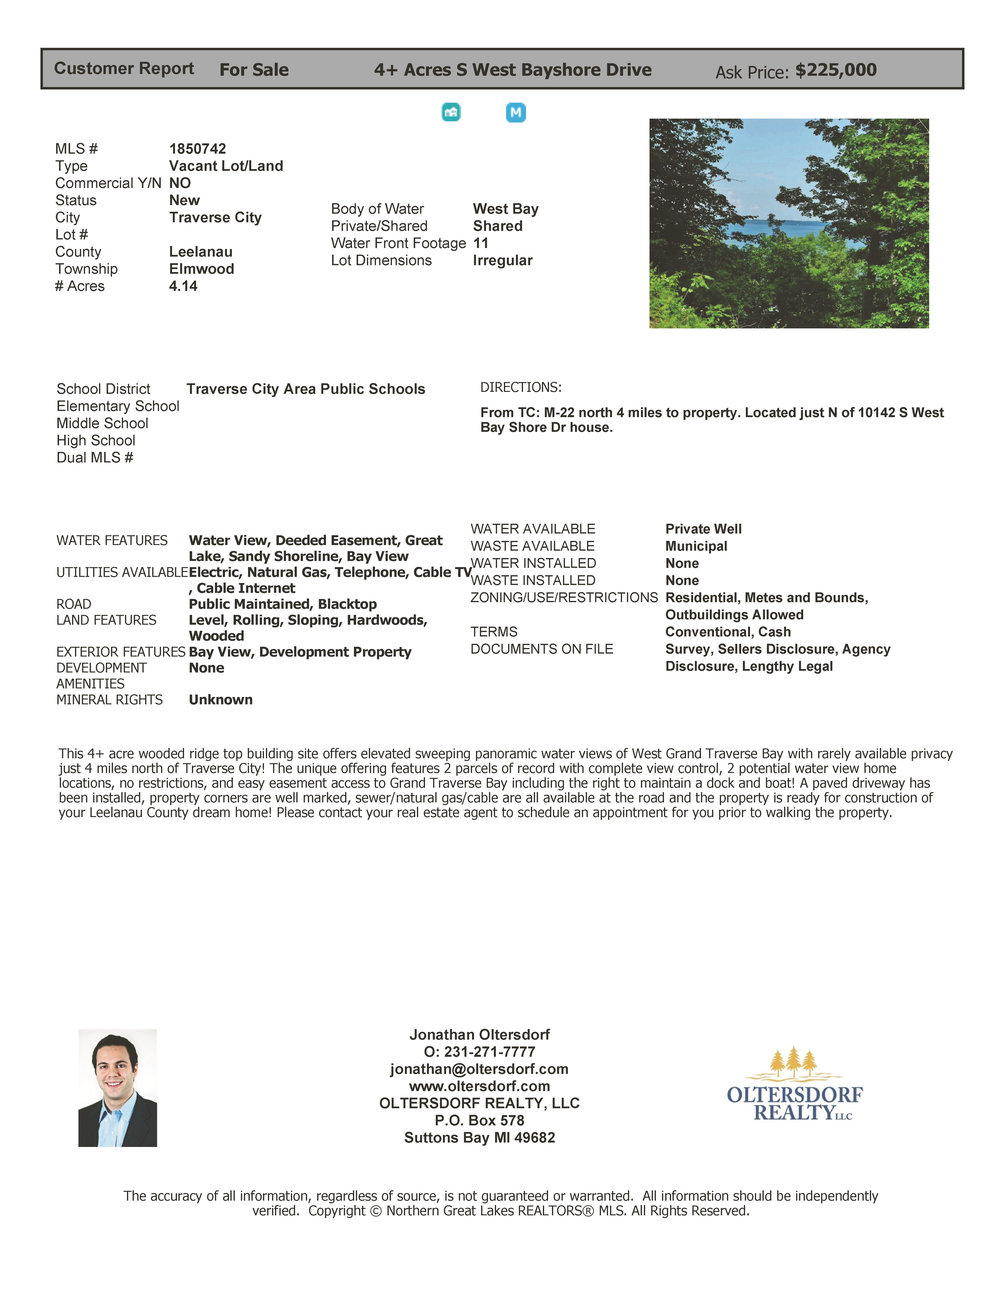 4+ Acres - S West Bayshore Drive, Traverse City – FOR SALE by Oltersdorf Realty - Marketing Packet (5).jpg